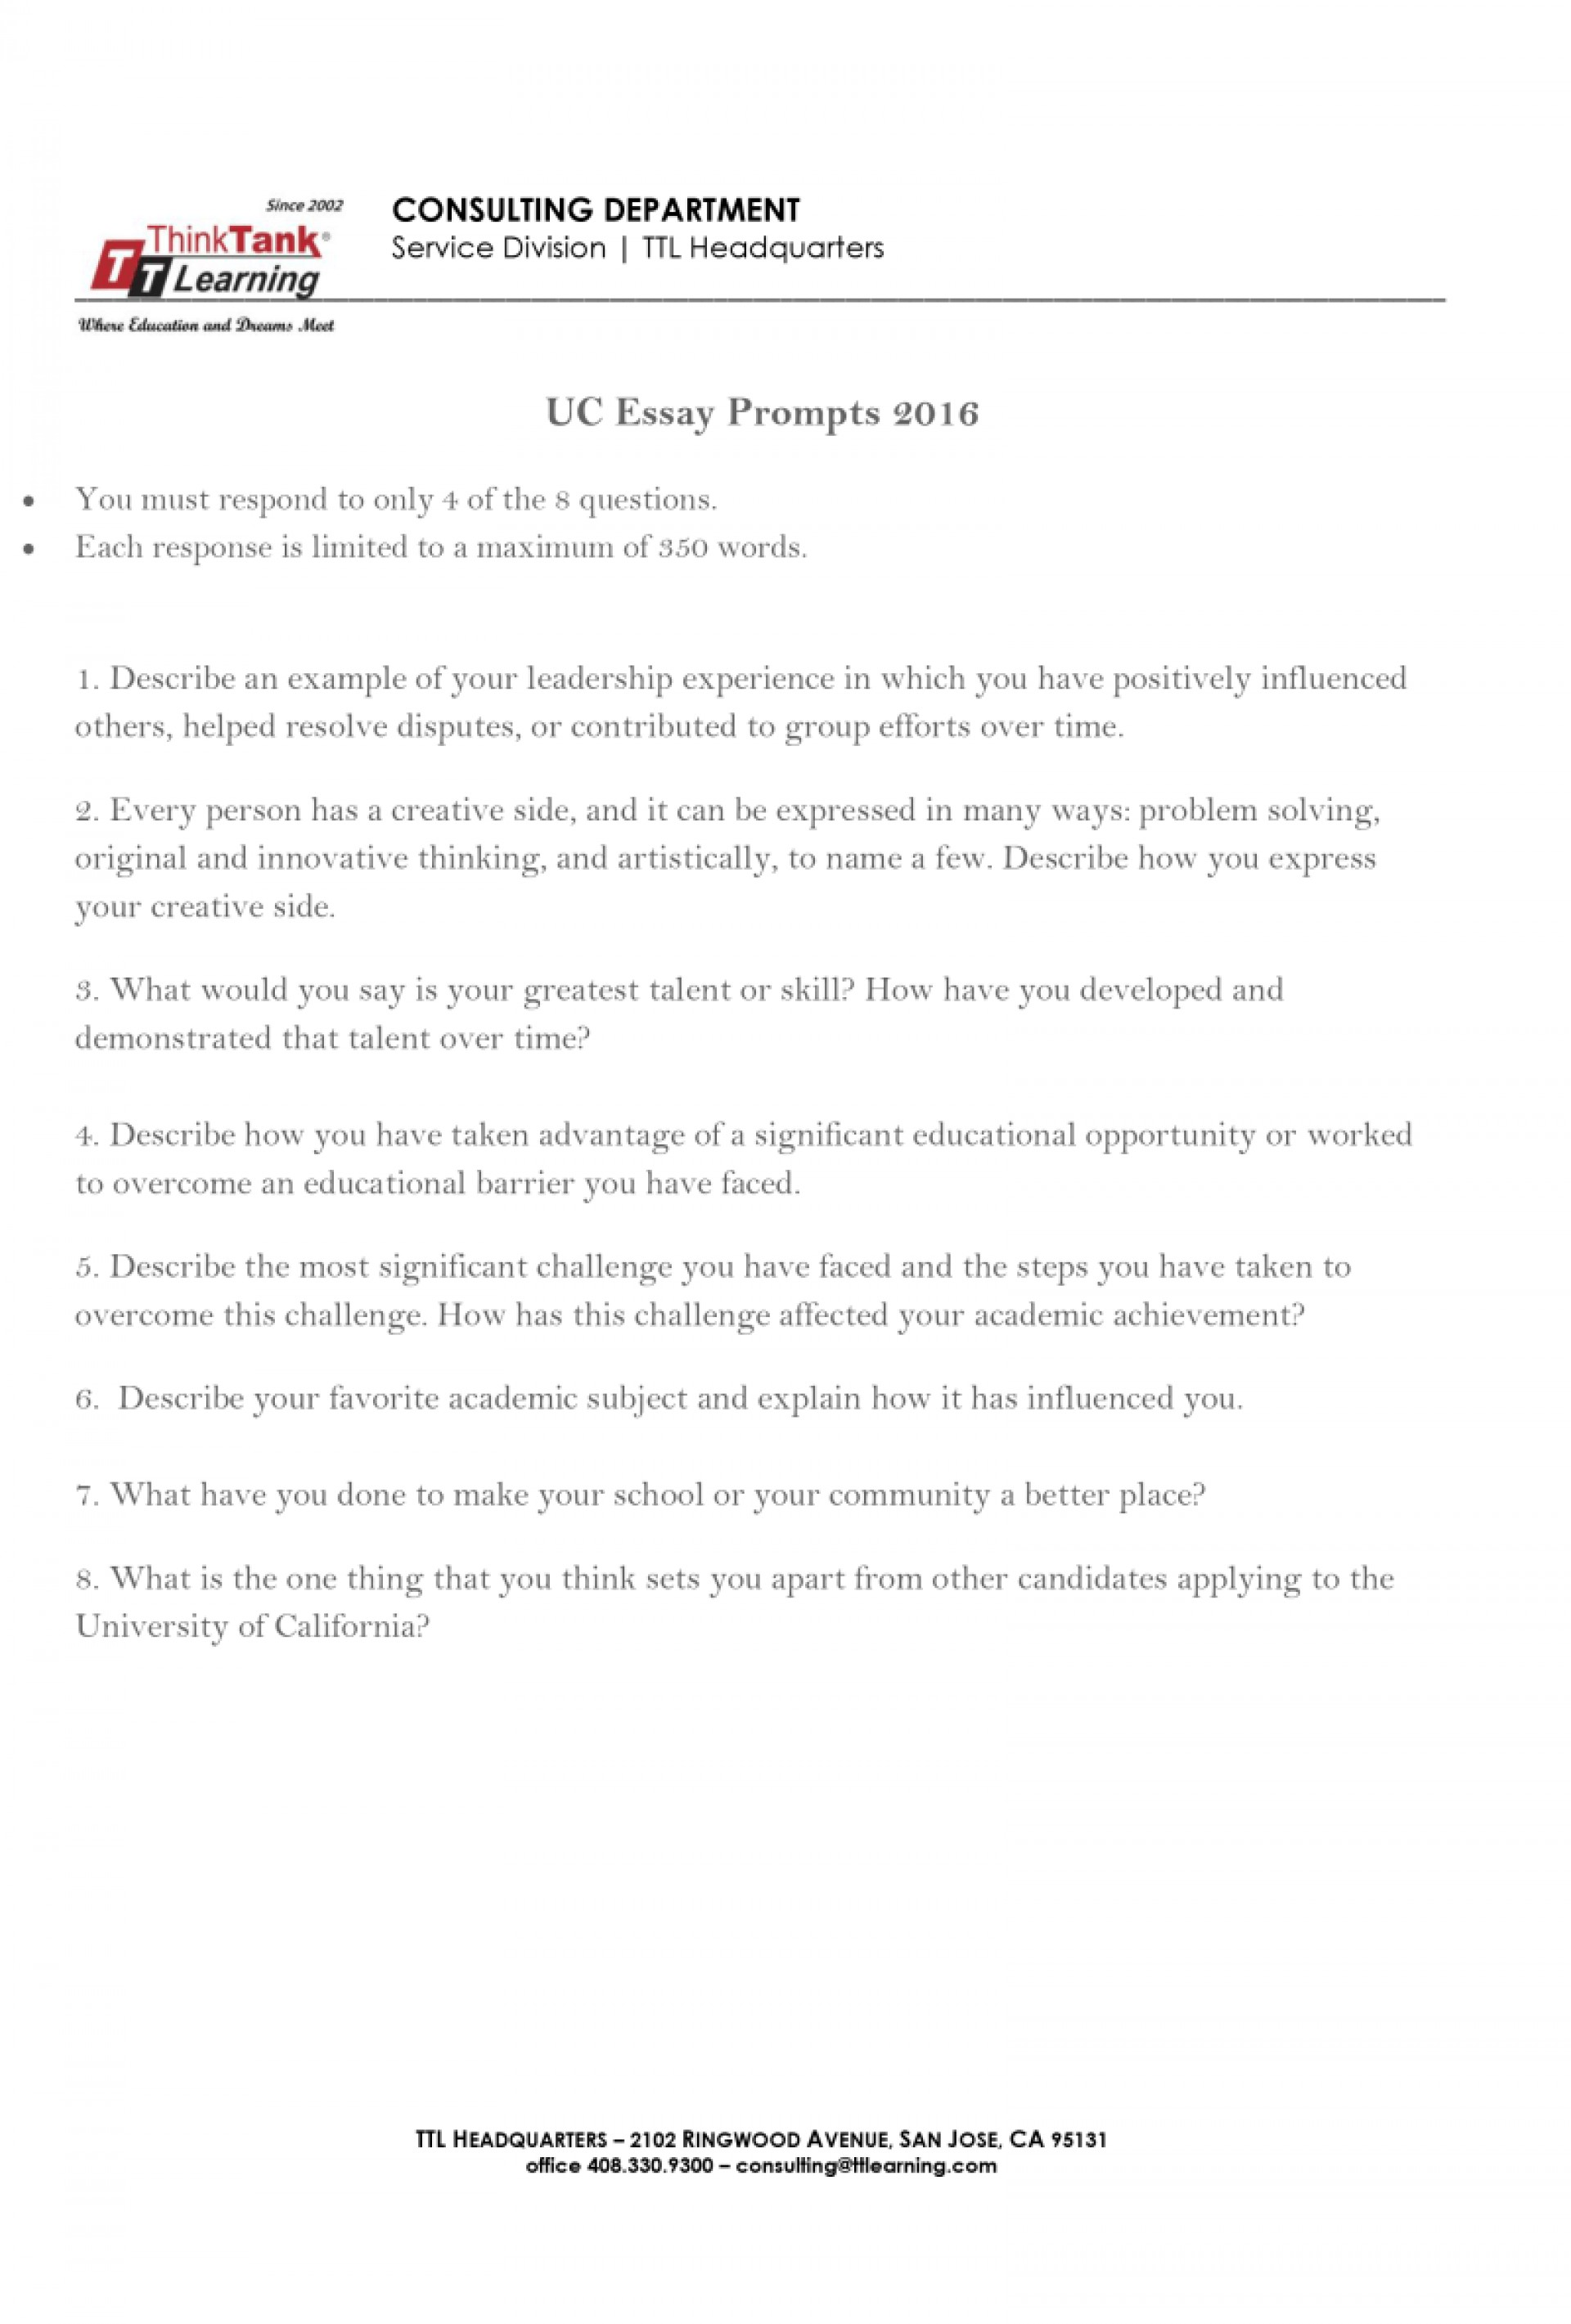 018 Apply Texas Essay Examples Example Prompts Poemsrom Co Uc College App 2 Application Berkeley Unusual Topic A C 2017 1920